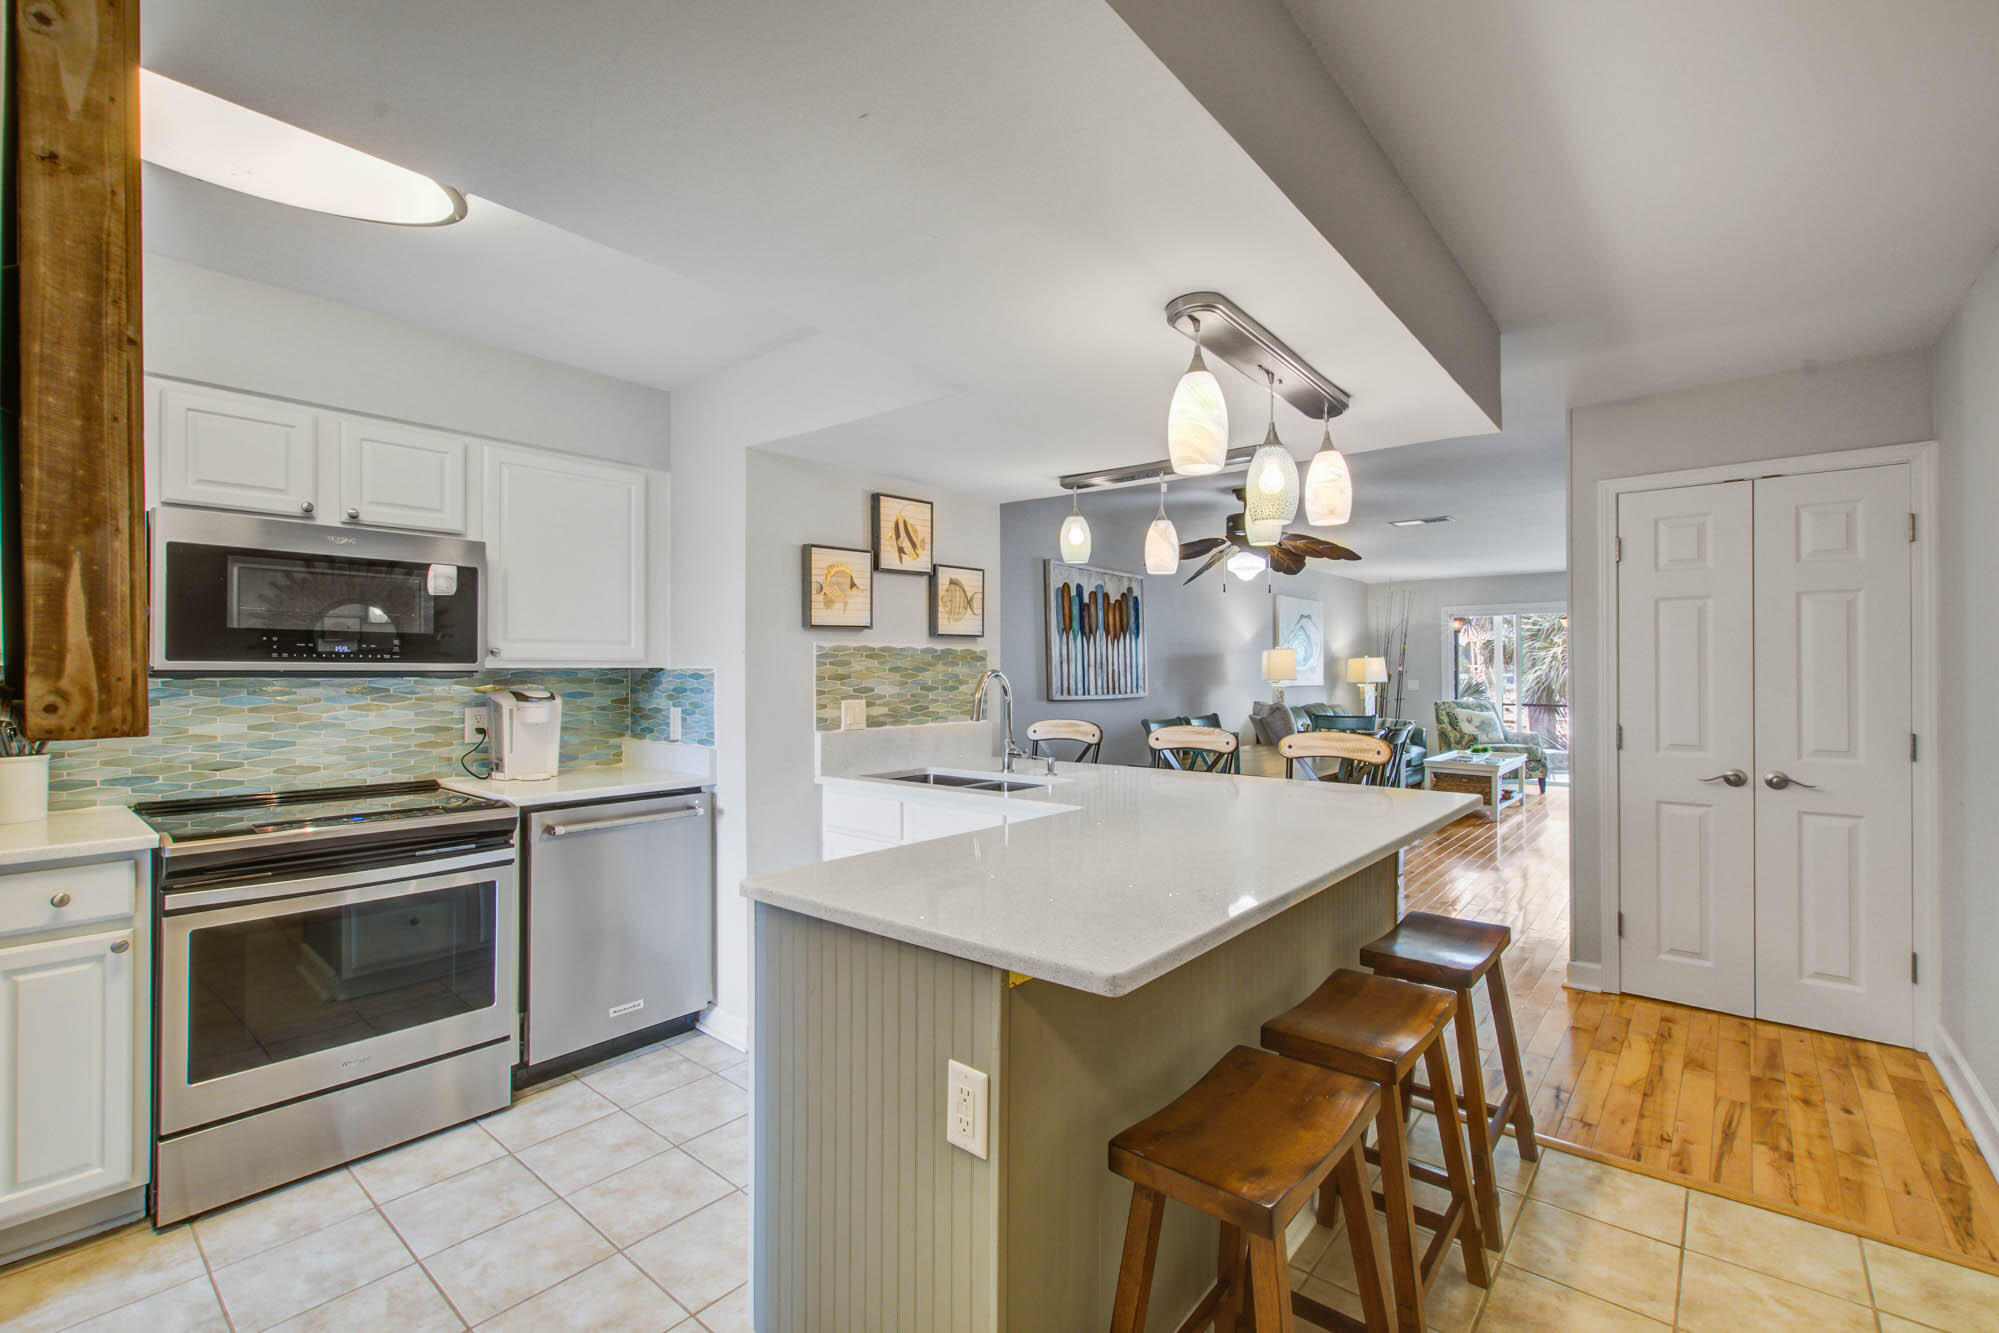 Mariners Cay Homes For Sale - 56 Mariners Cay, Folly Beach, SC - 19